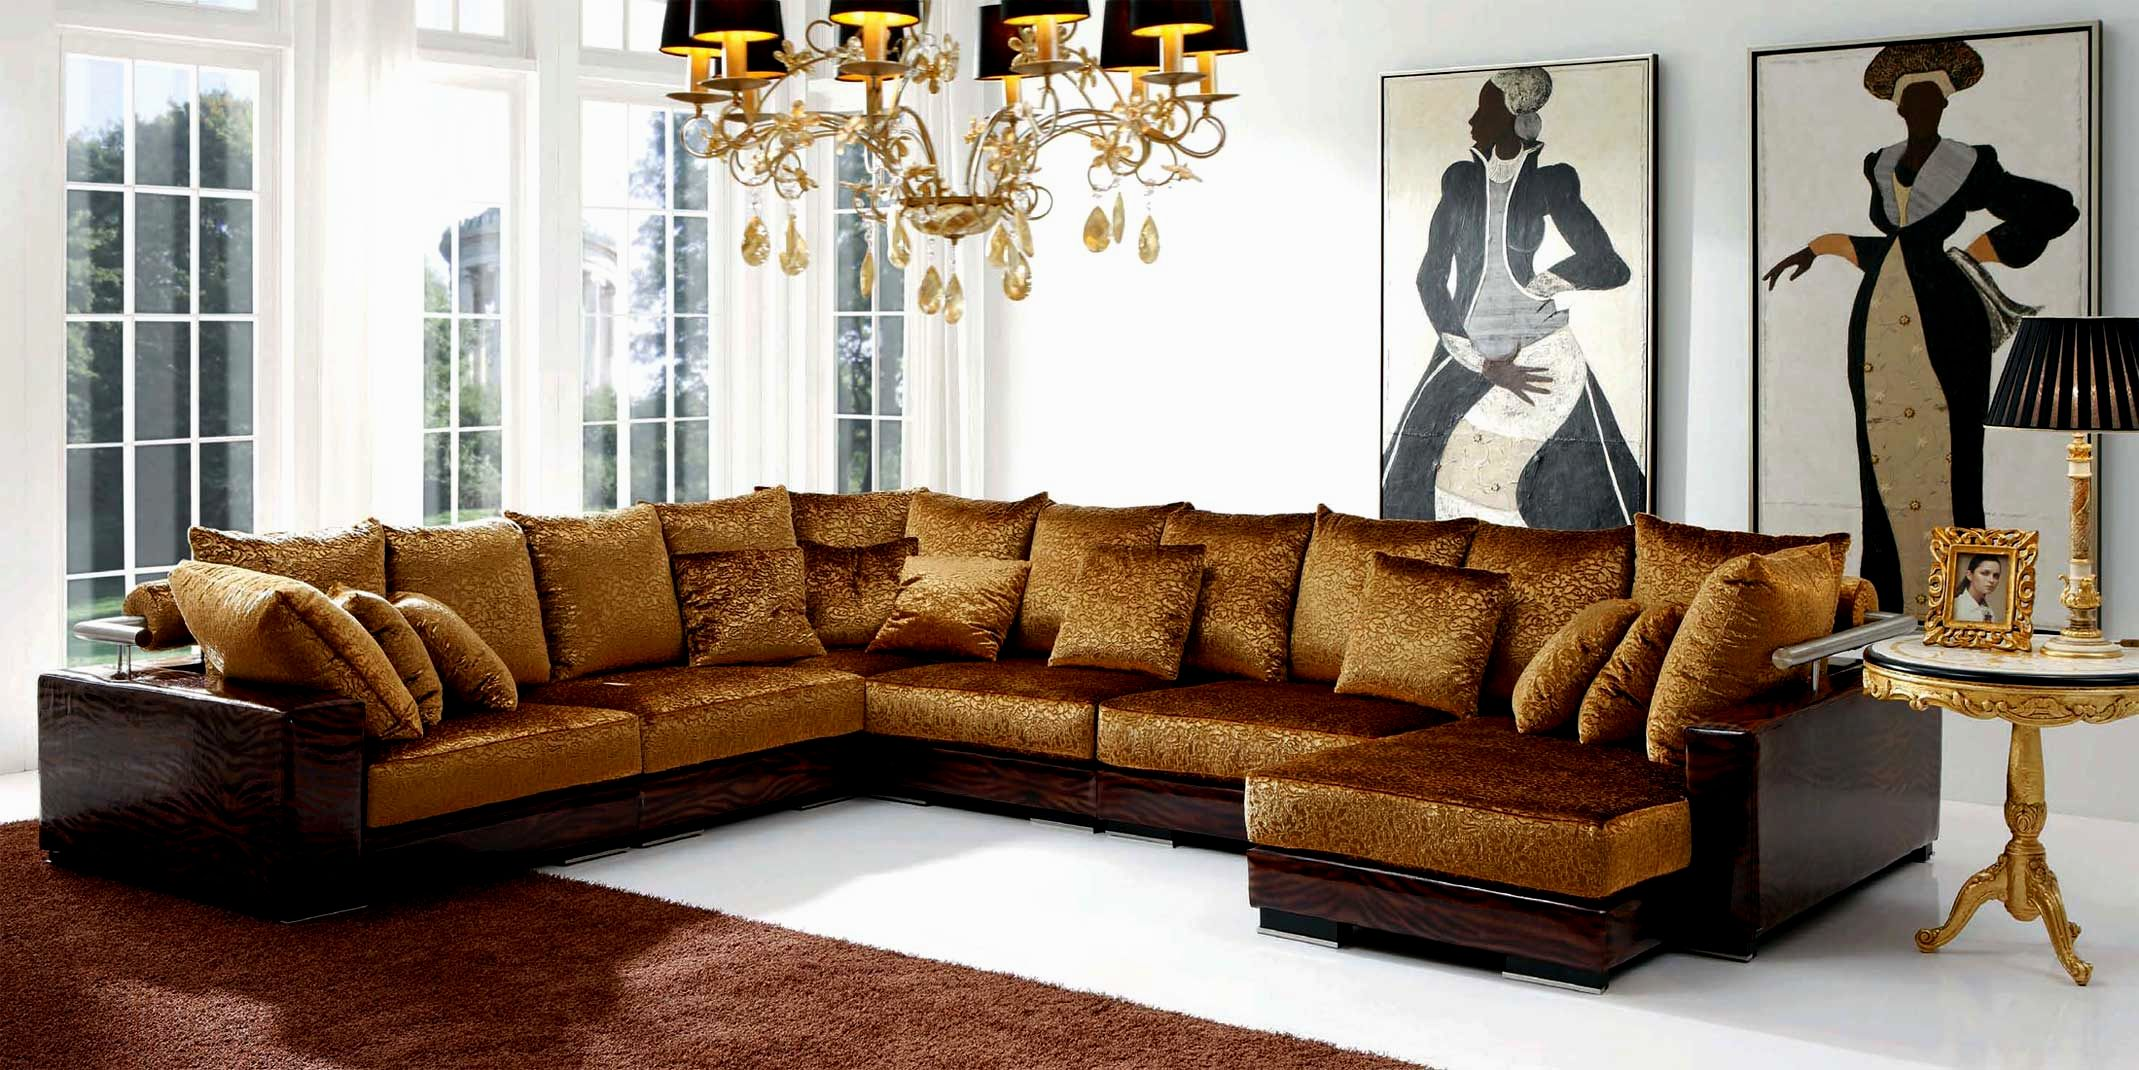 luxury sectional sofa with chaise design-Superb Sectional sofa with Chaise Design